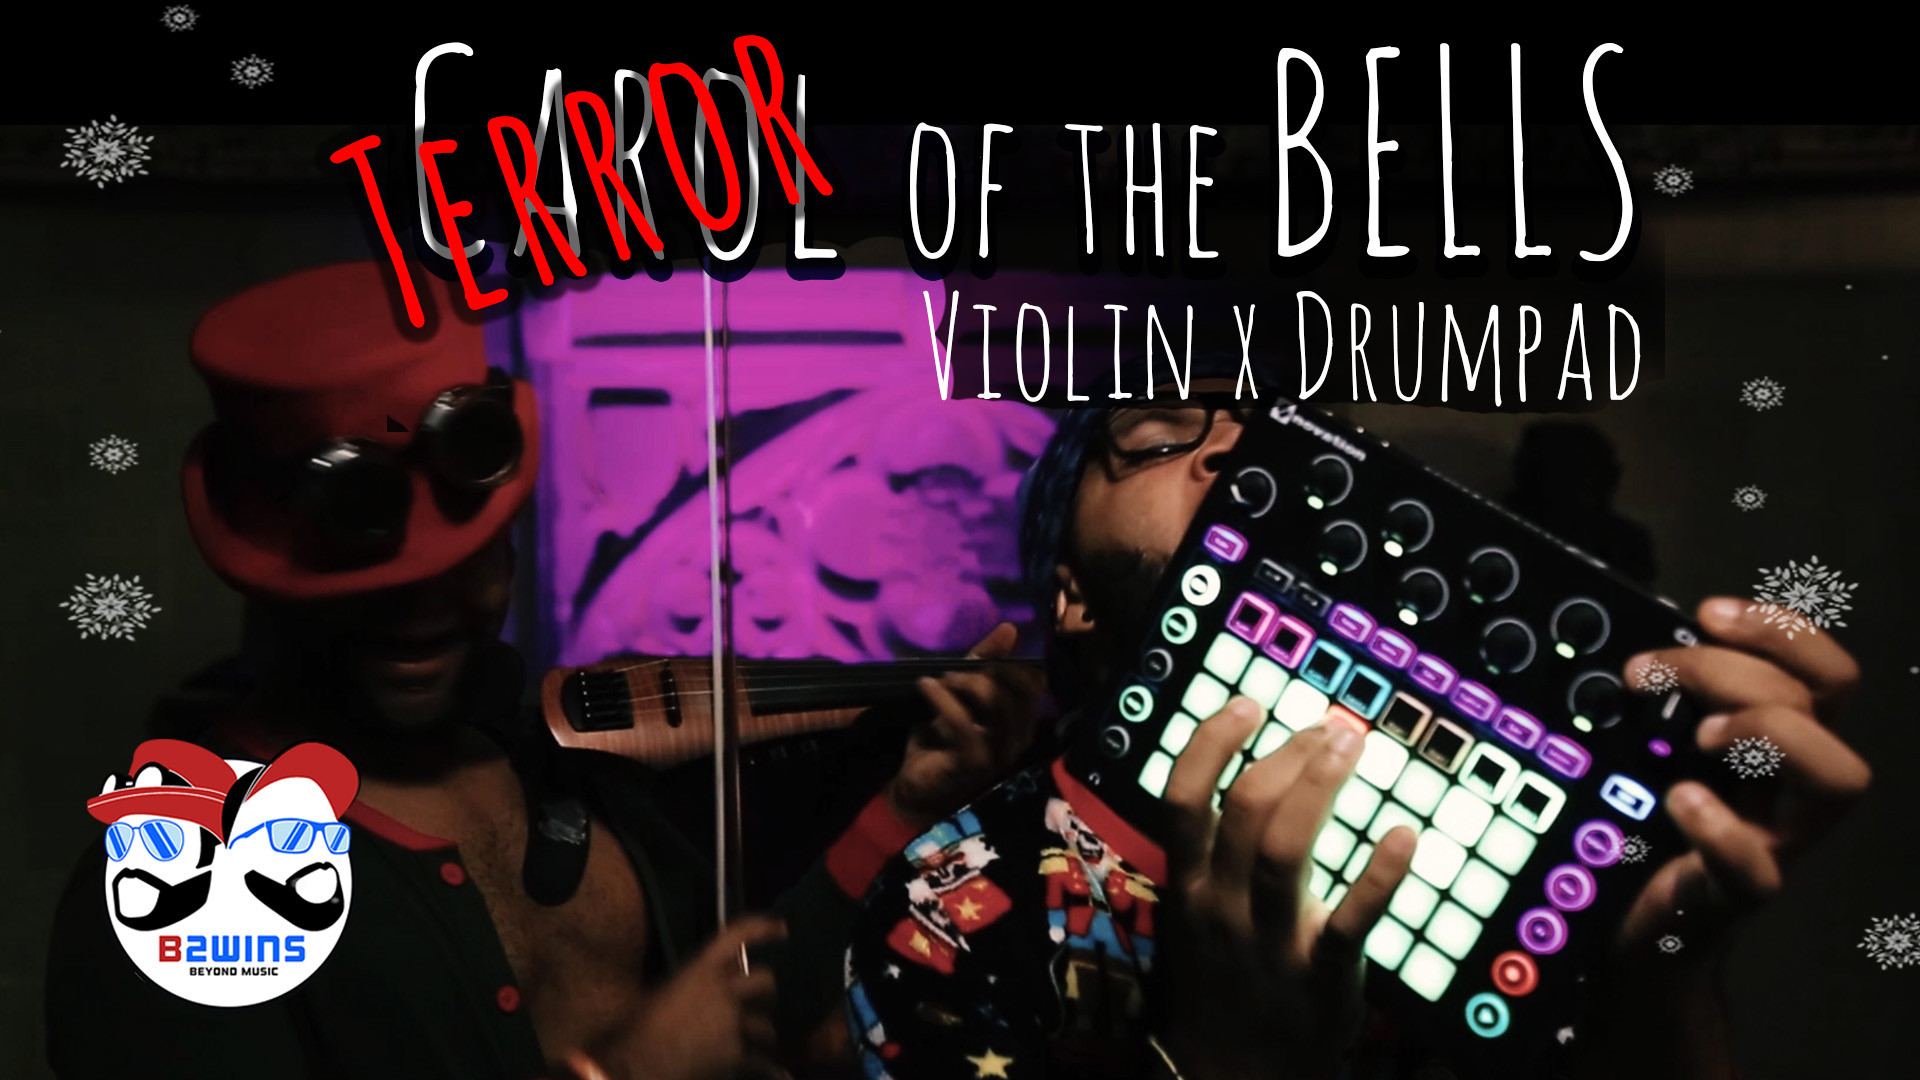 B2wins Terror of the Bells Carol of the Bells Hip Hop Violin